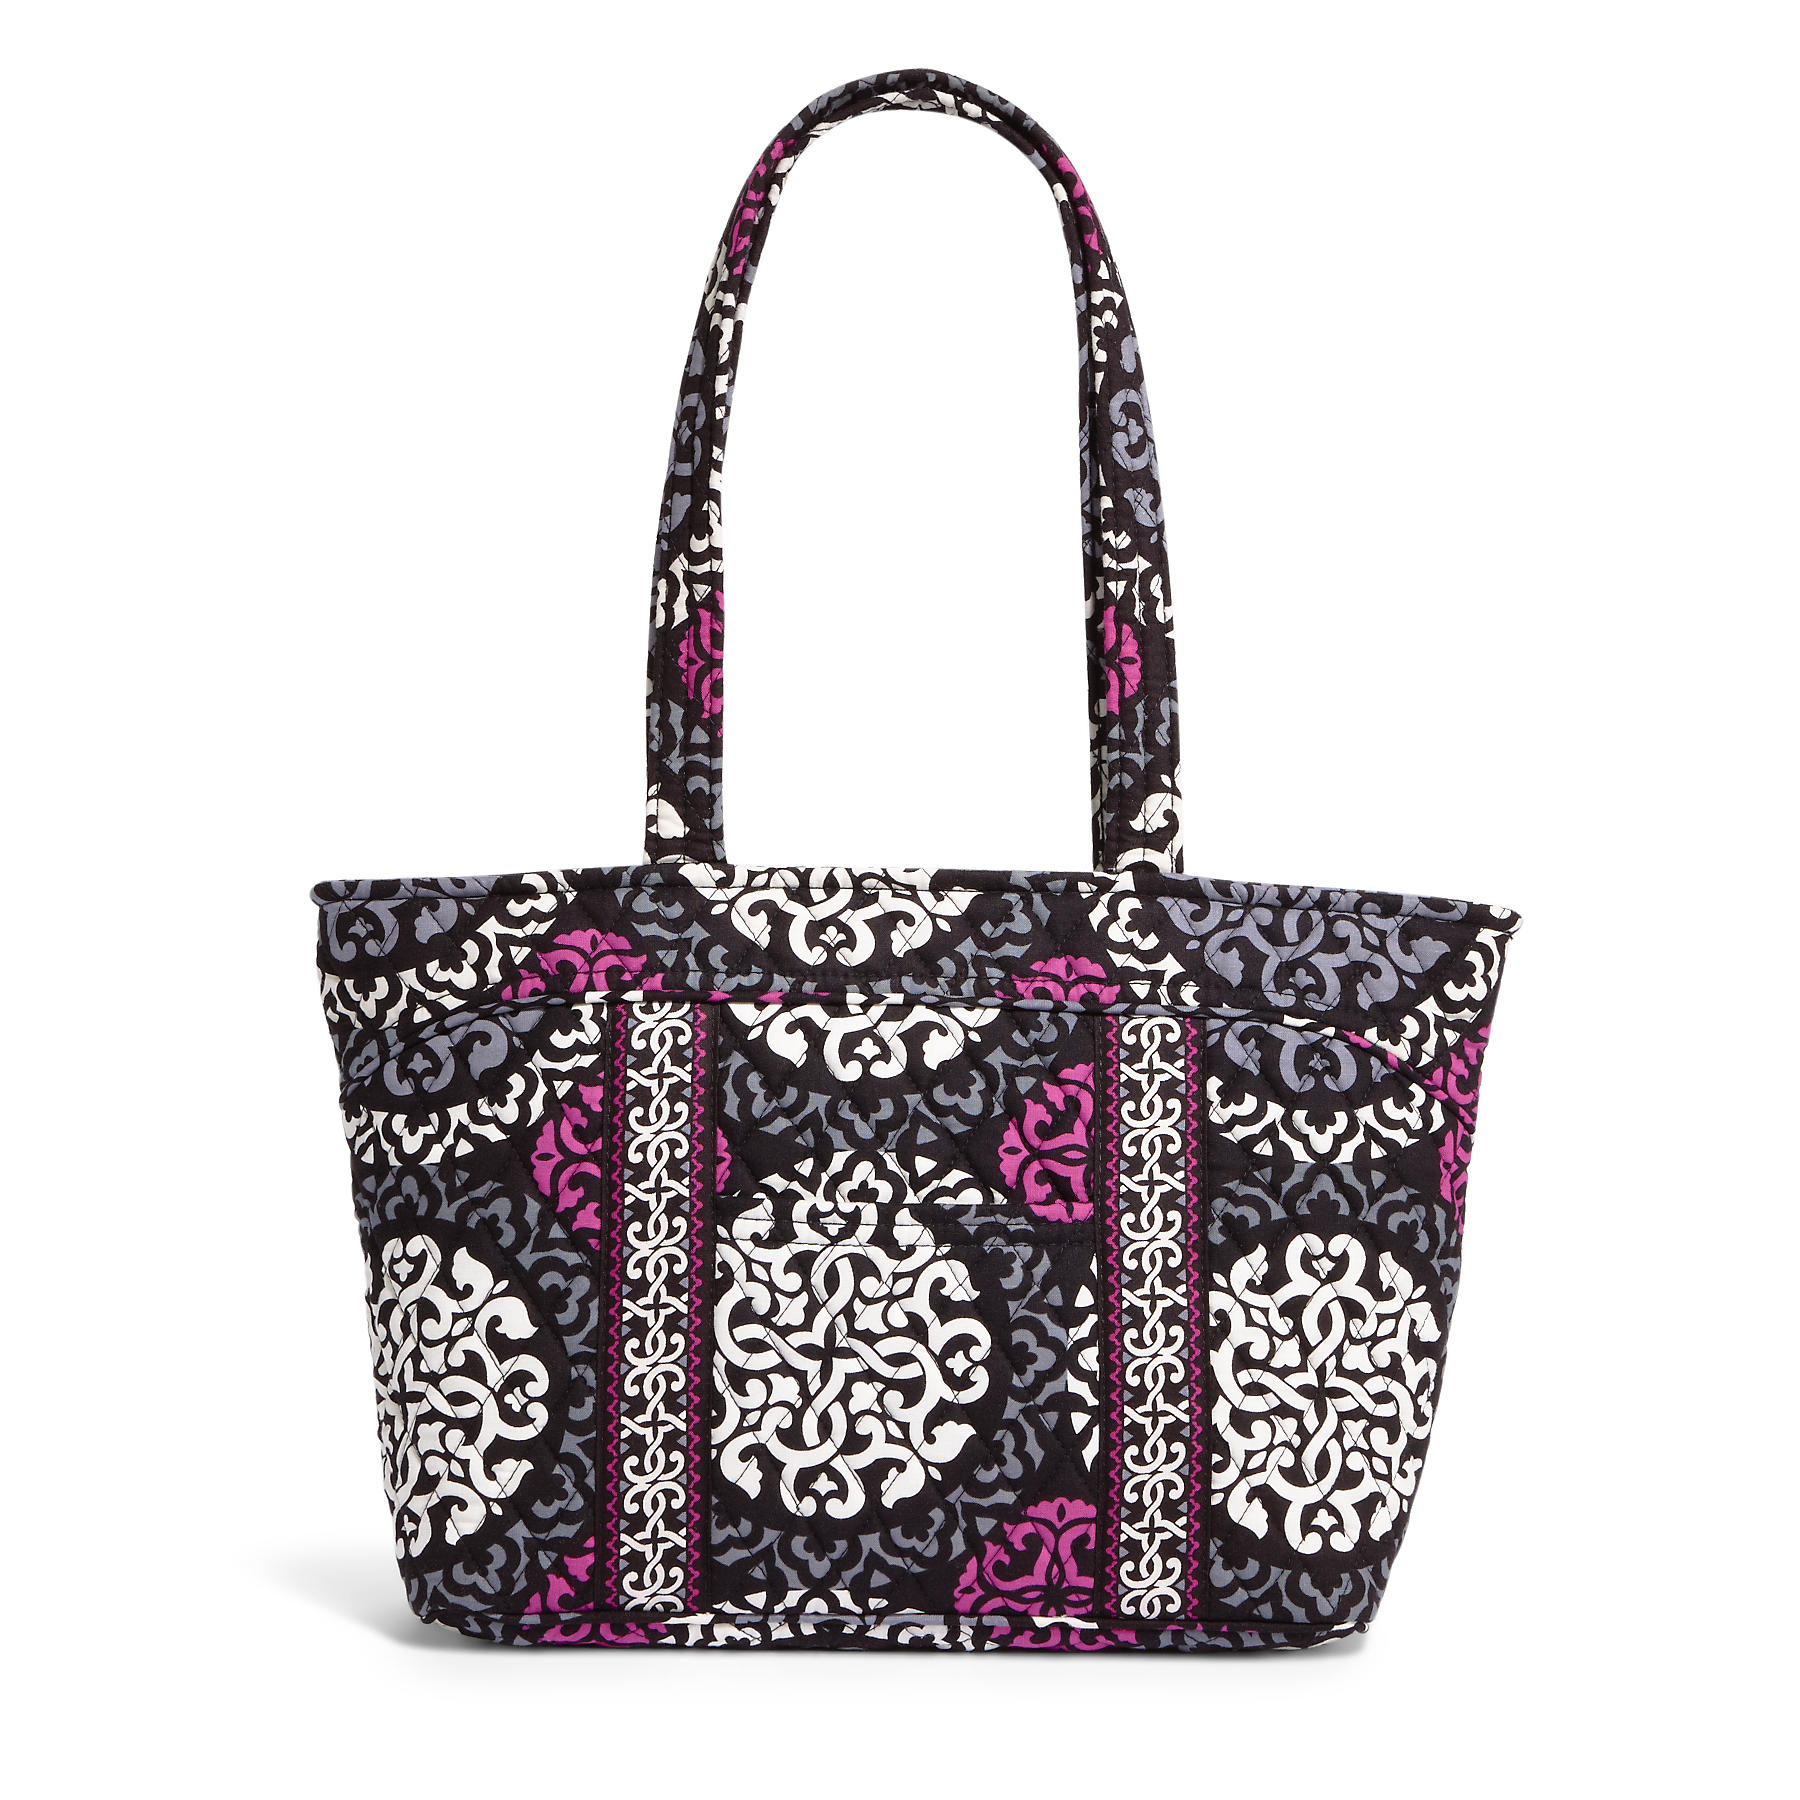 http://s7d2.scene7.com/is/image/VeraBradley/11450149?$zoom_productdetail$&rgn=0,0,1356,1800&scl=4.66321243523316&id=6Czql1